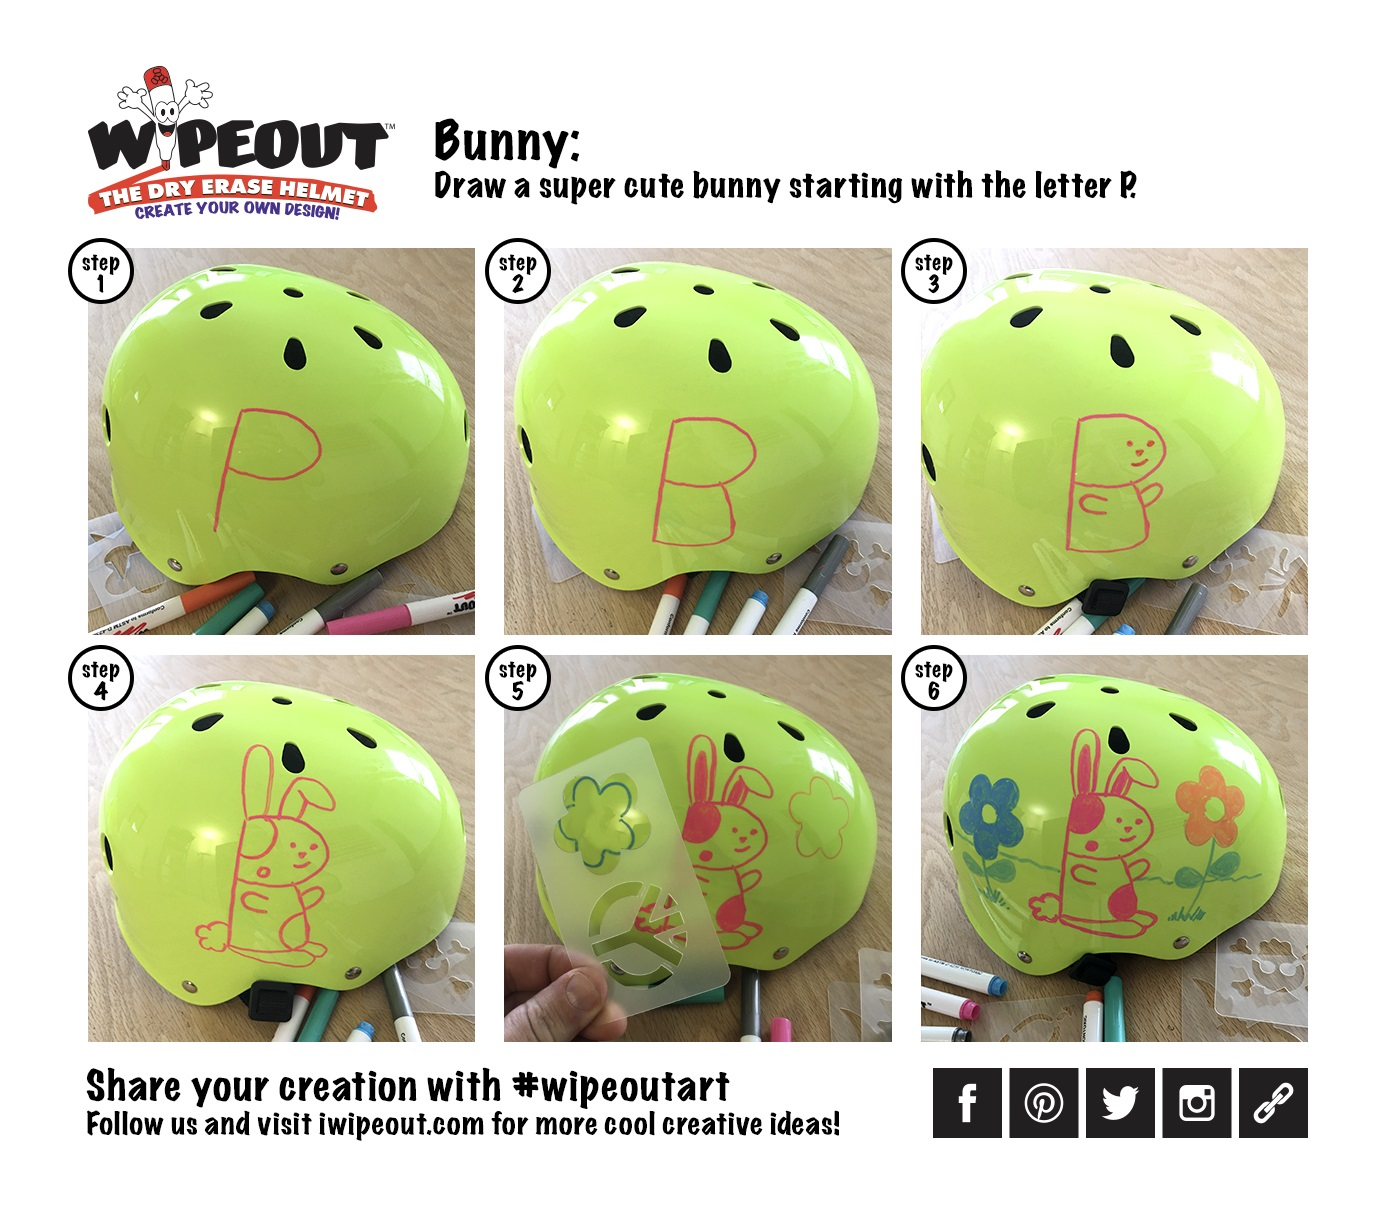 Wipeout-Drawing-Tutorial-Bunny